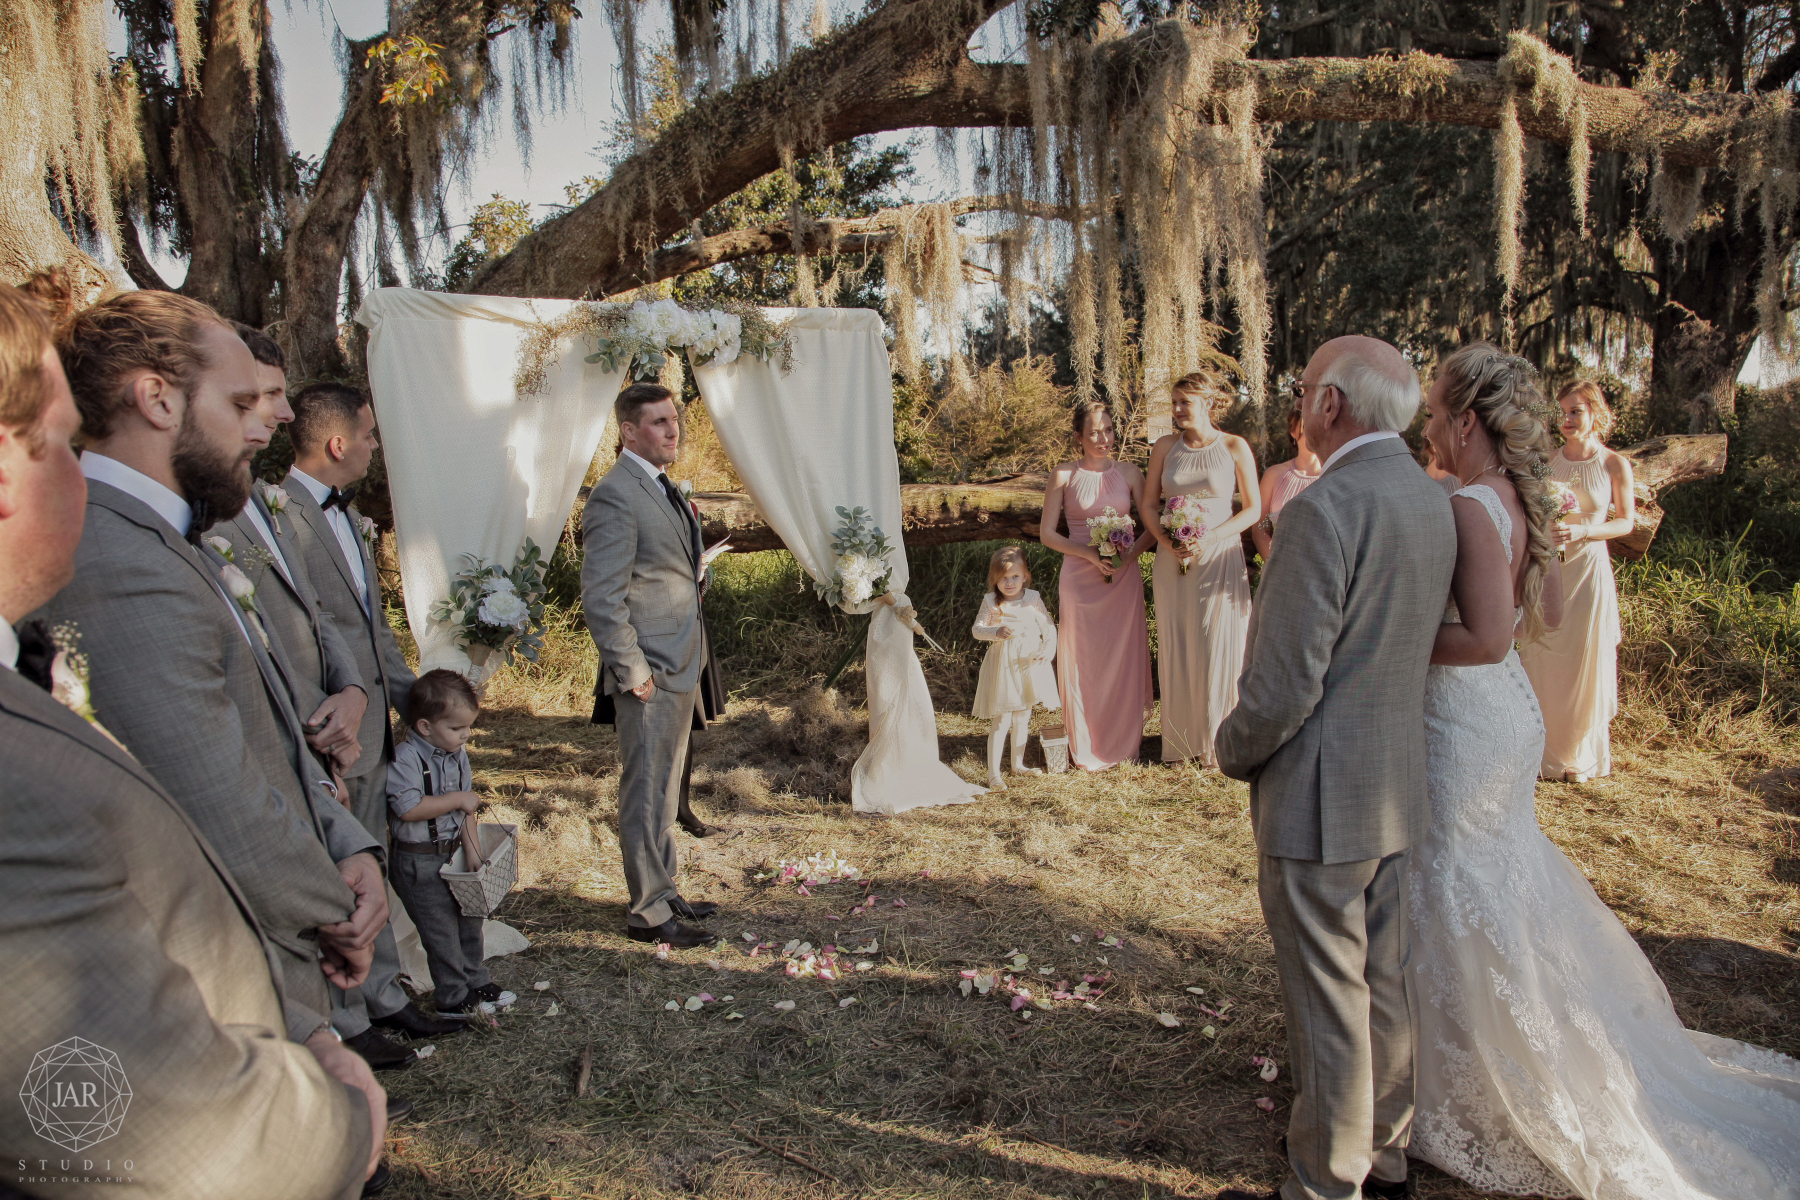 31-ceremony-outside-orlando-wedding-jarstudio.JPG